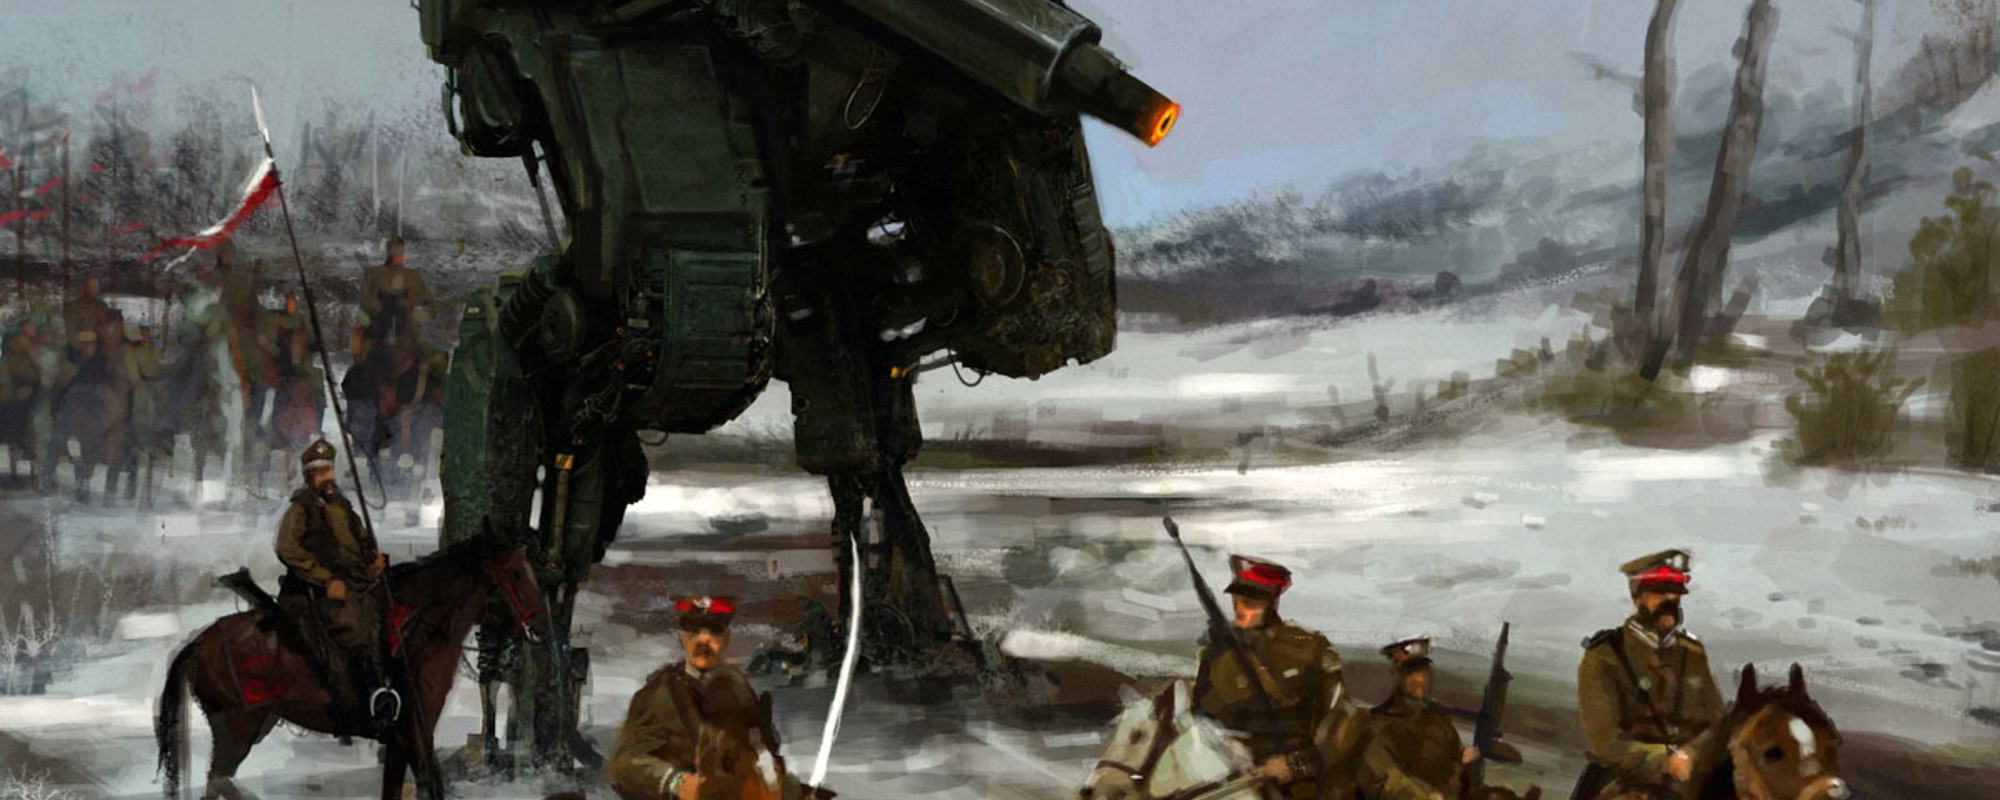 Jakub Różalski Reimagines the Polish-Soviet War With Robots